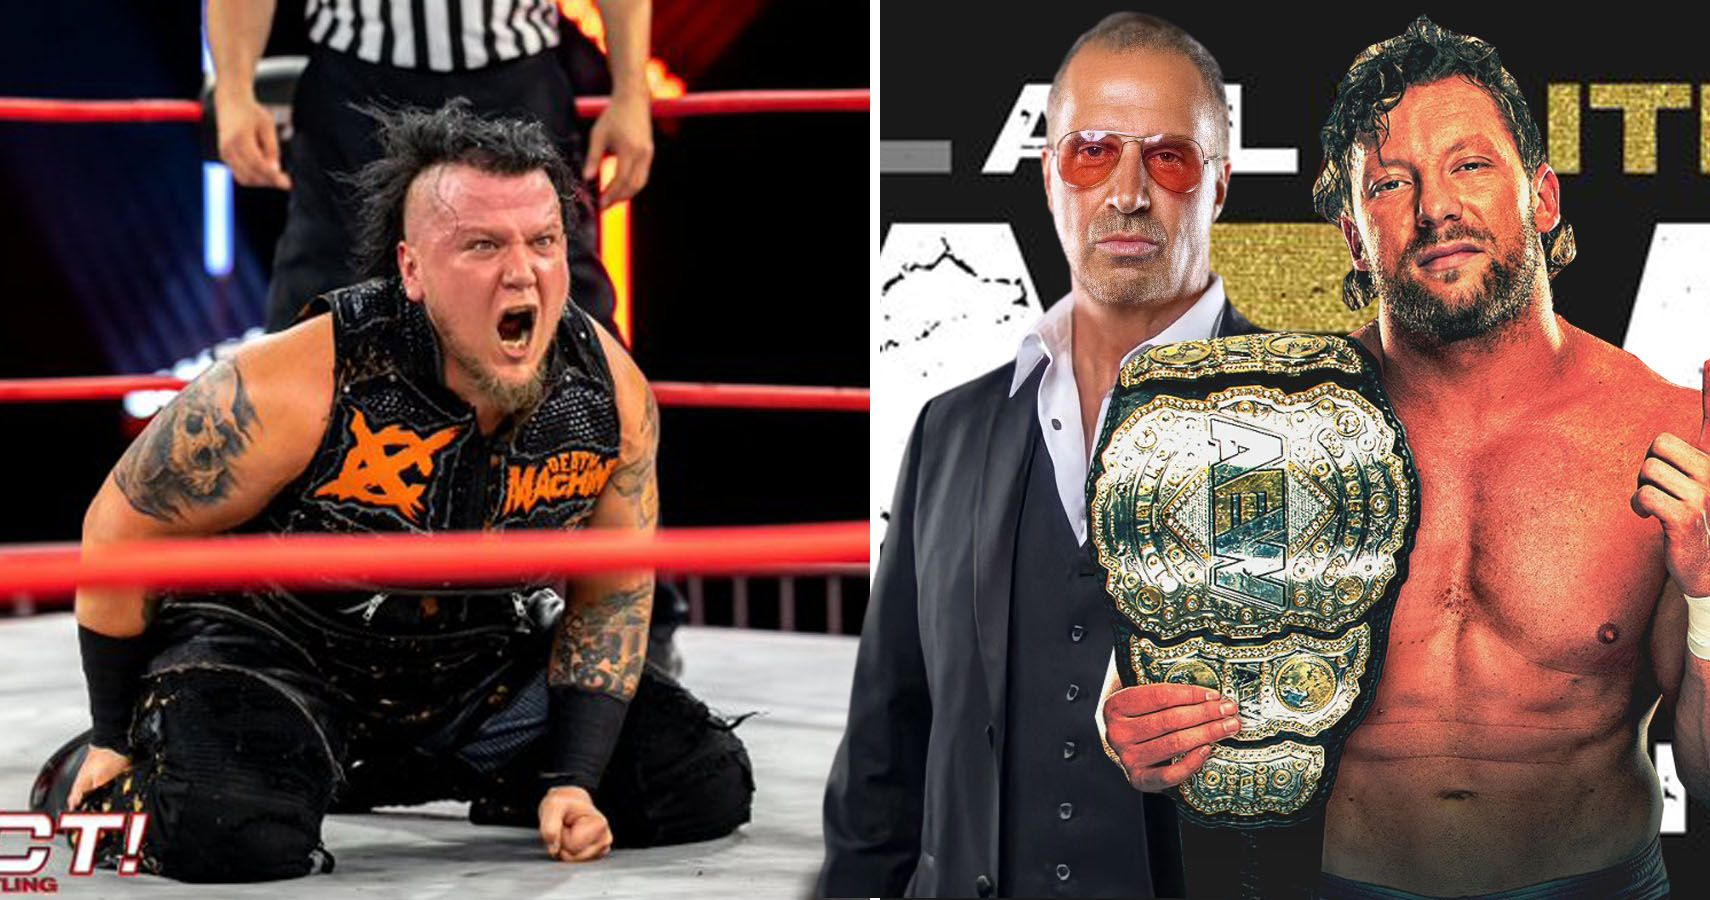 IMPACT's Sami Callihan Making His Way To AEW After Being Fired? [Theory]